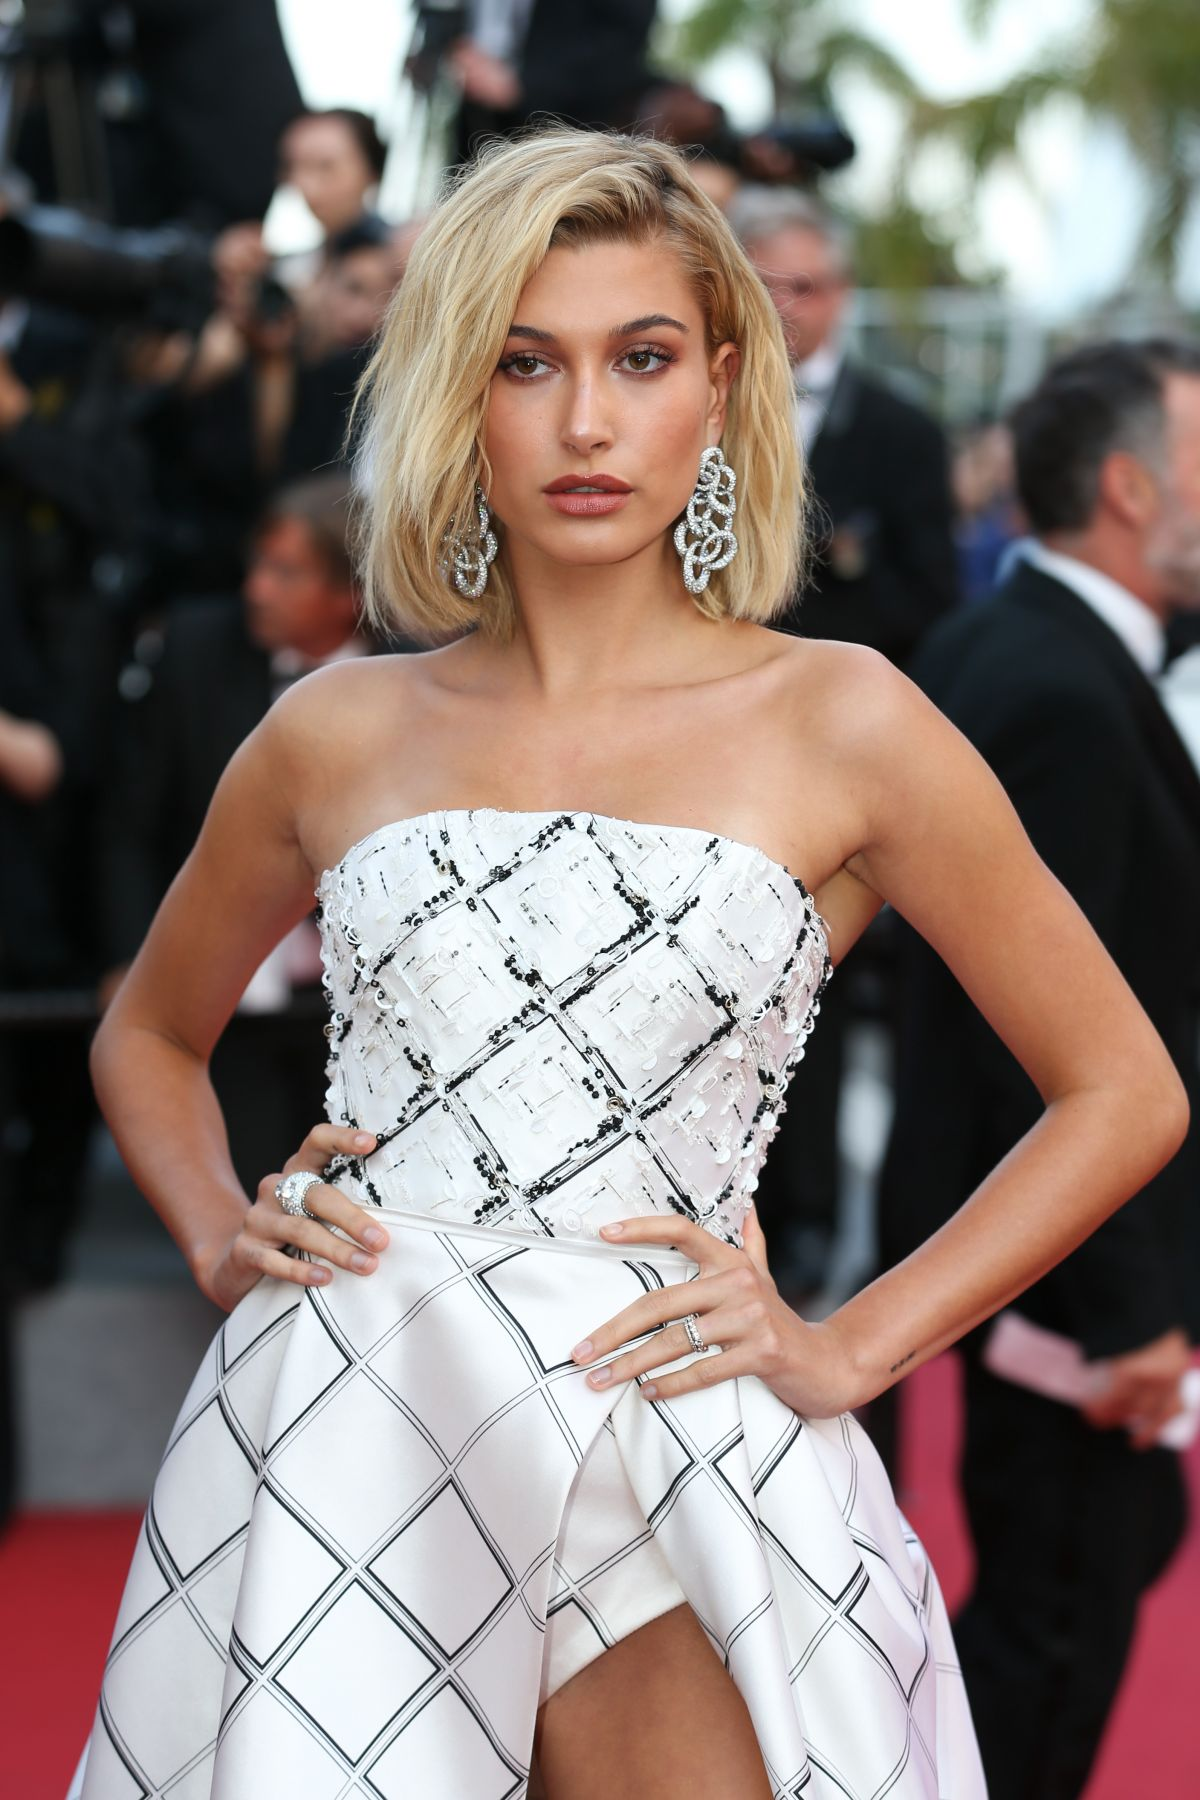 Hailey Baldwin In Fashion Magazine October 2017 Issue: HAILEY BALDWIN At The Beguiled Premiere At 70th Annual